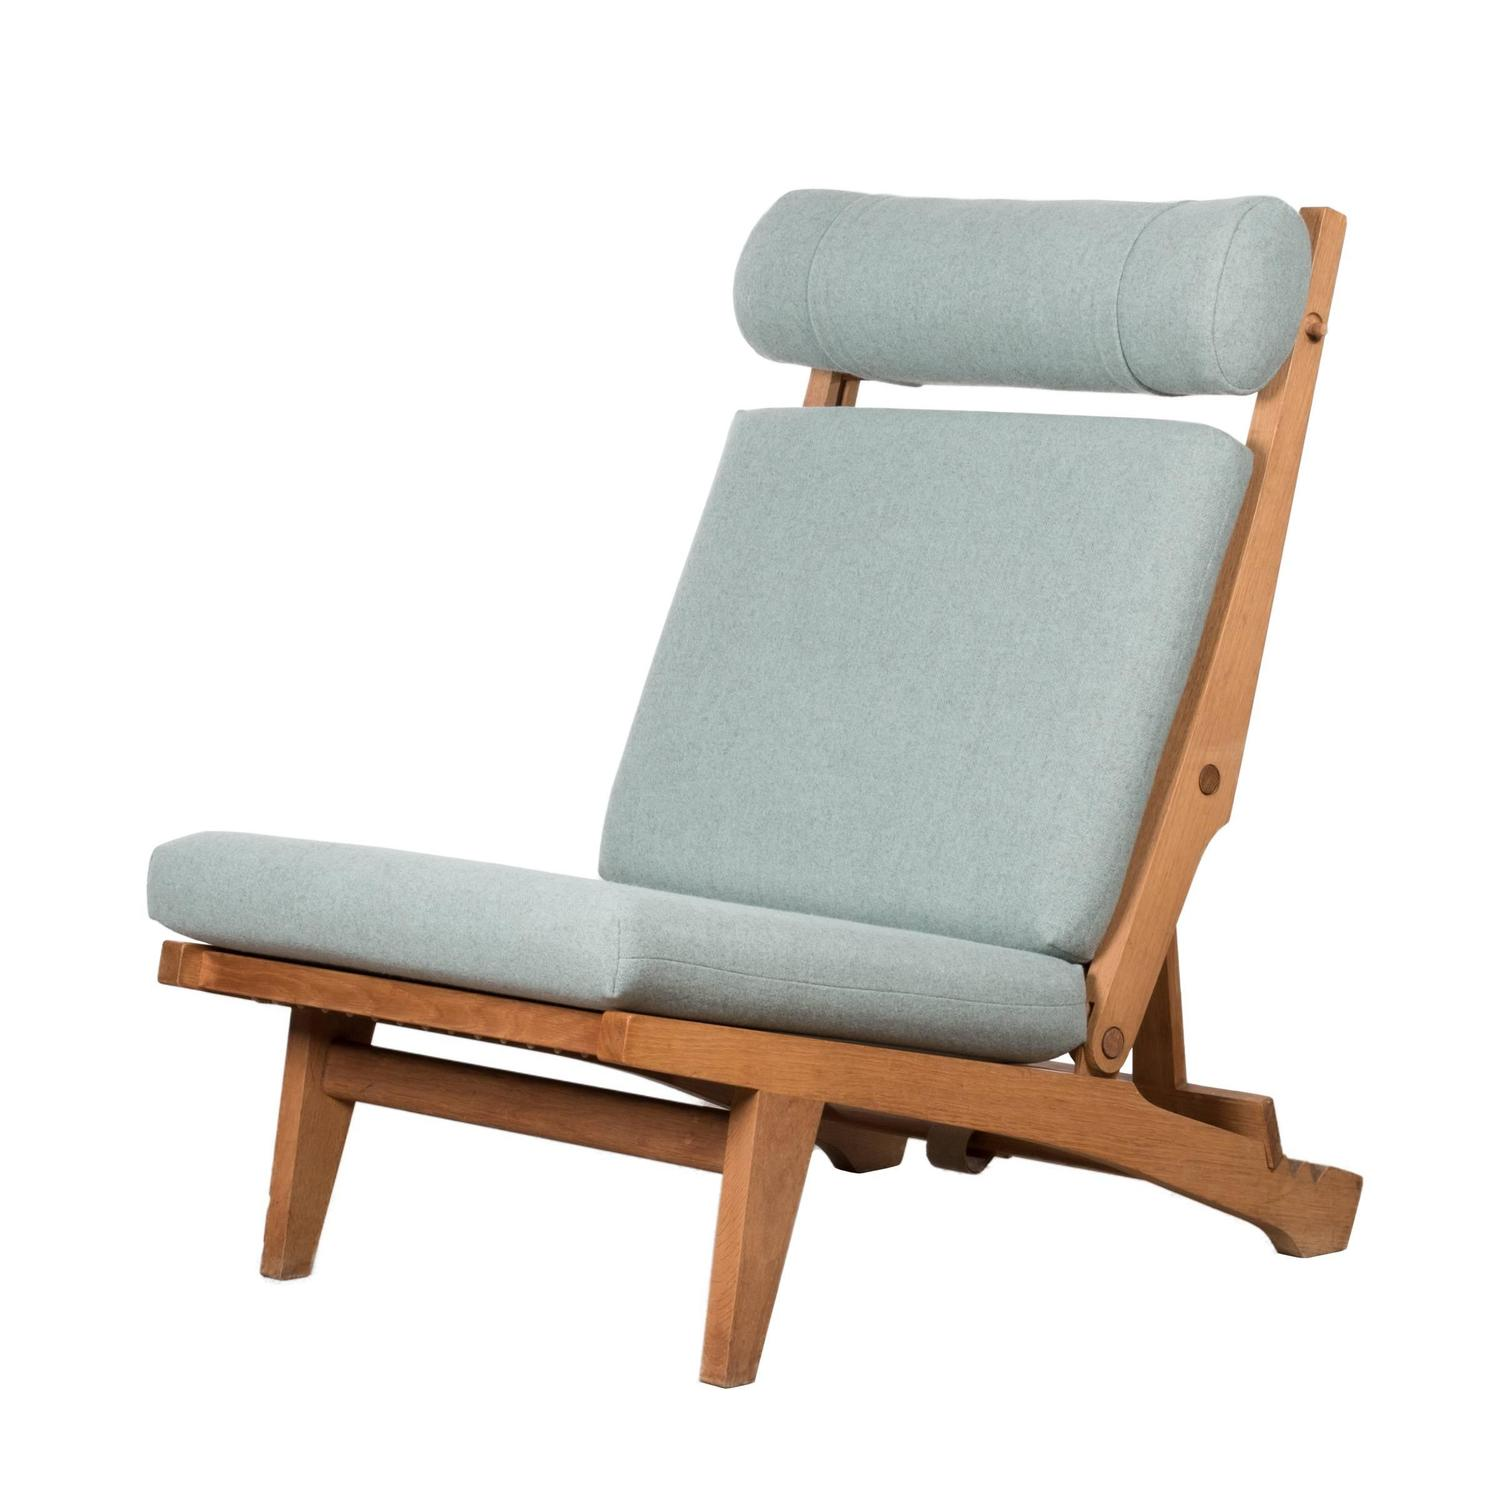 Pair of AP71 Folding Chairs by Wegner For Sale at 1stdibs